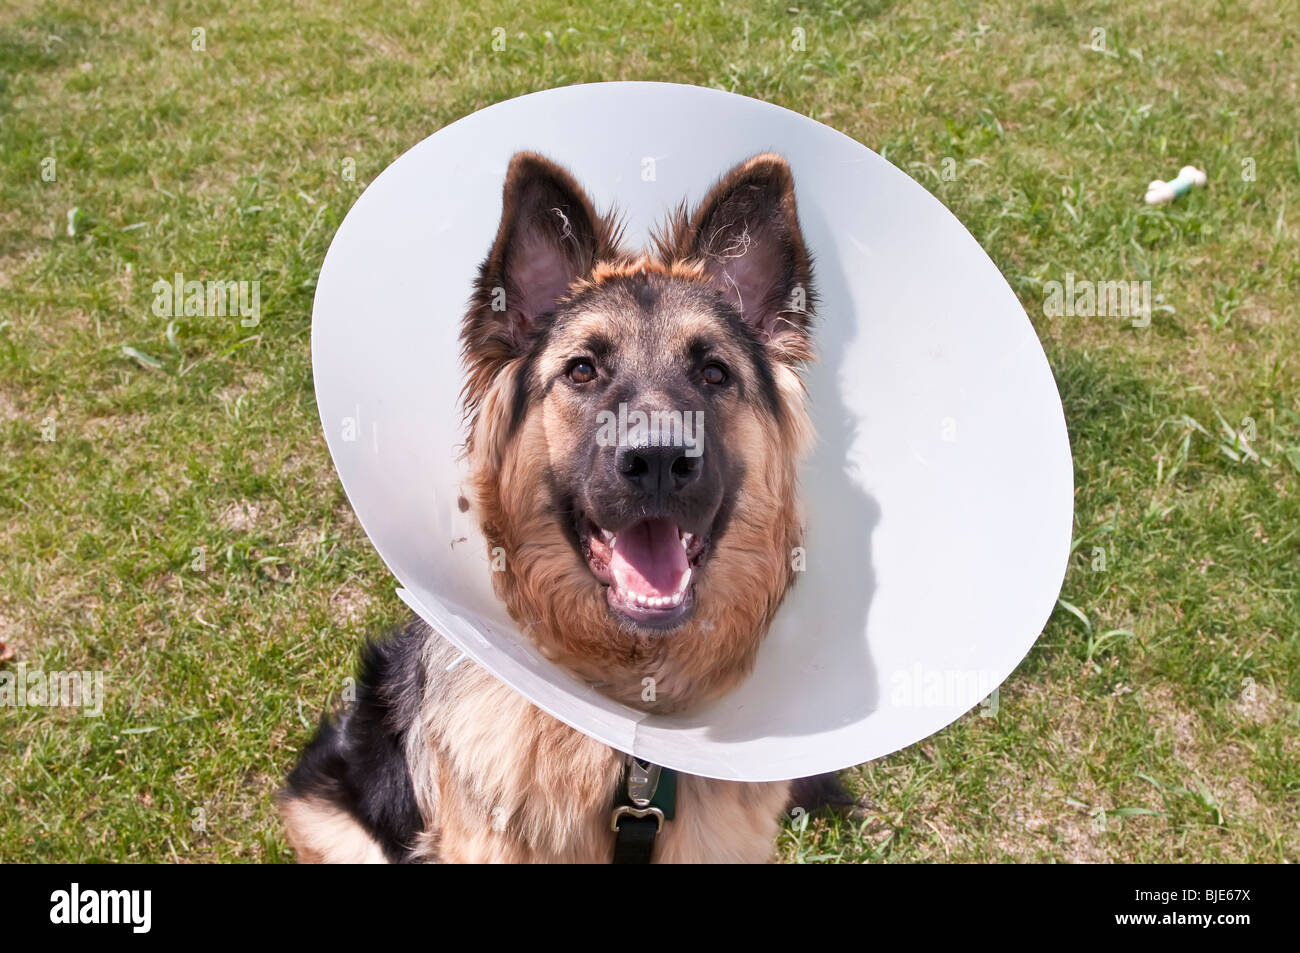 German shepherd with cone